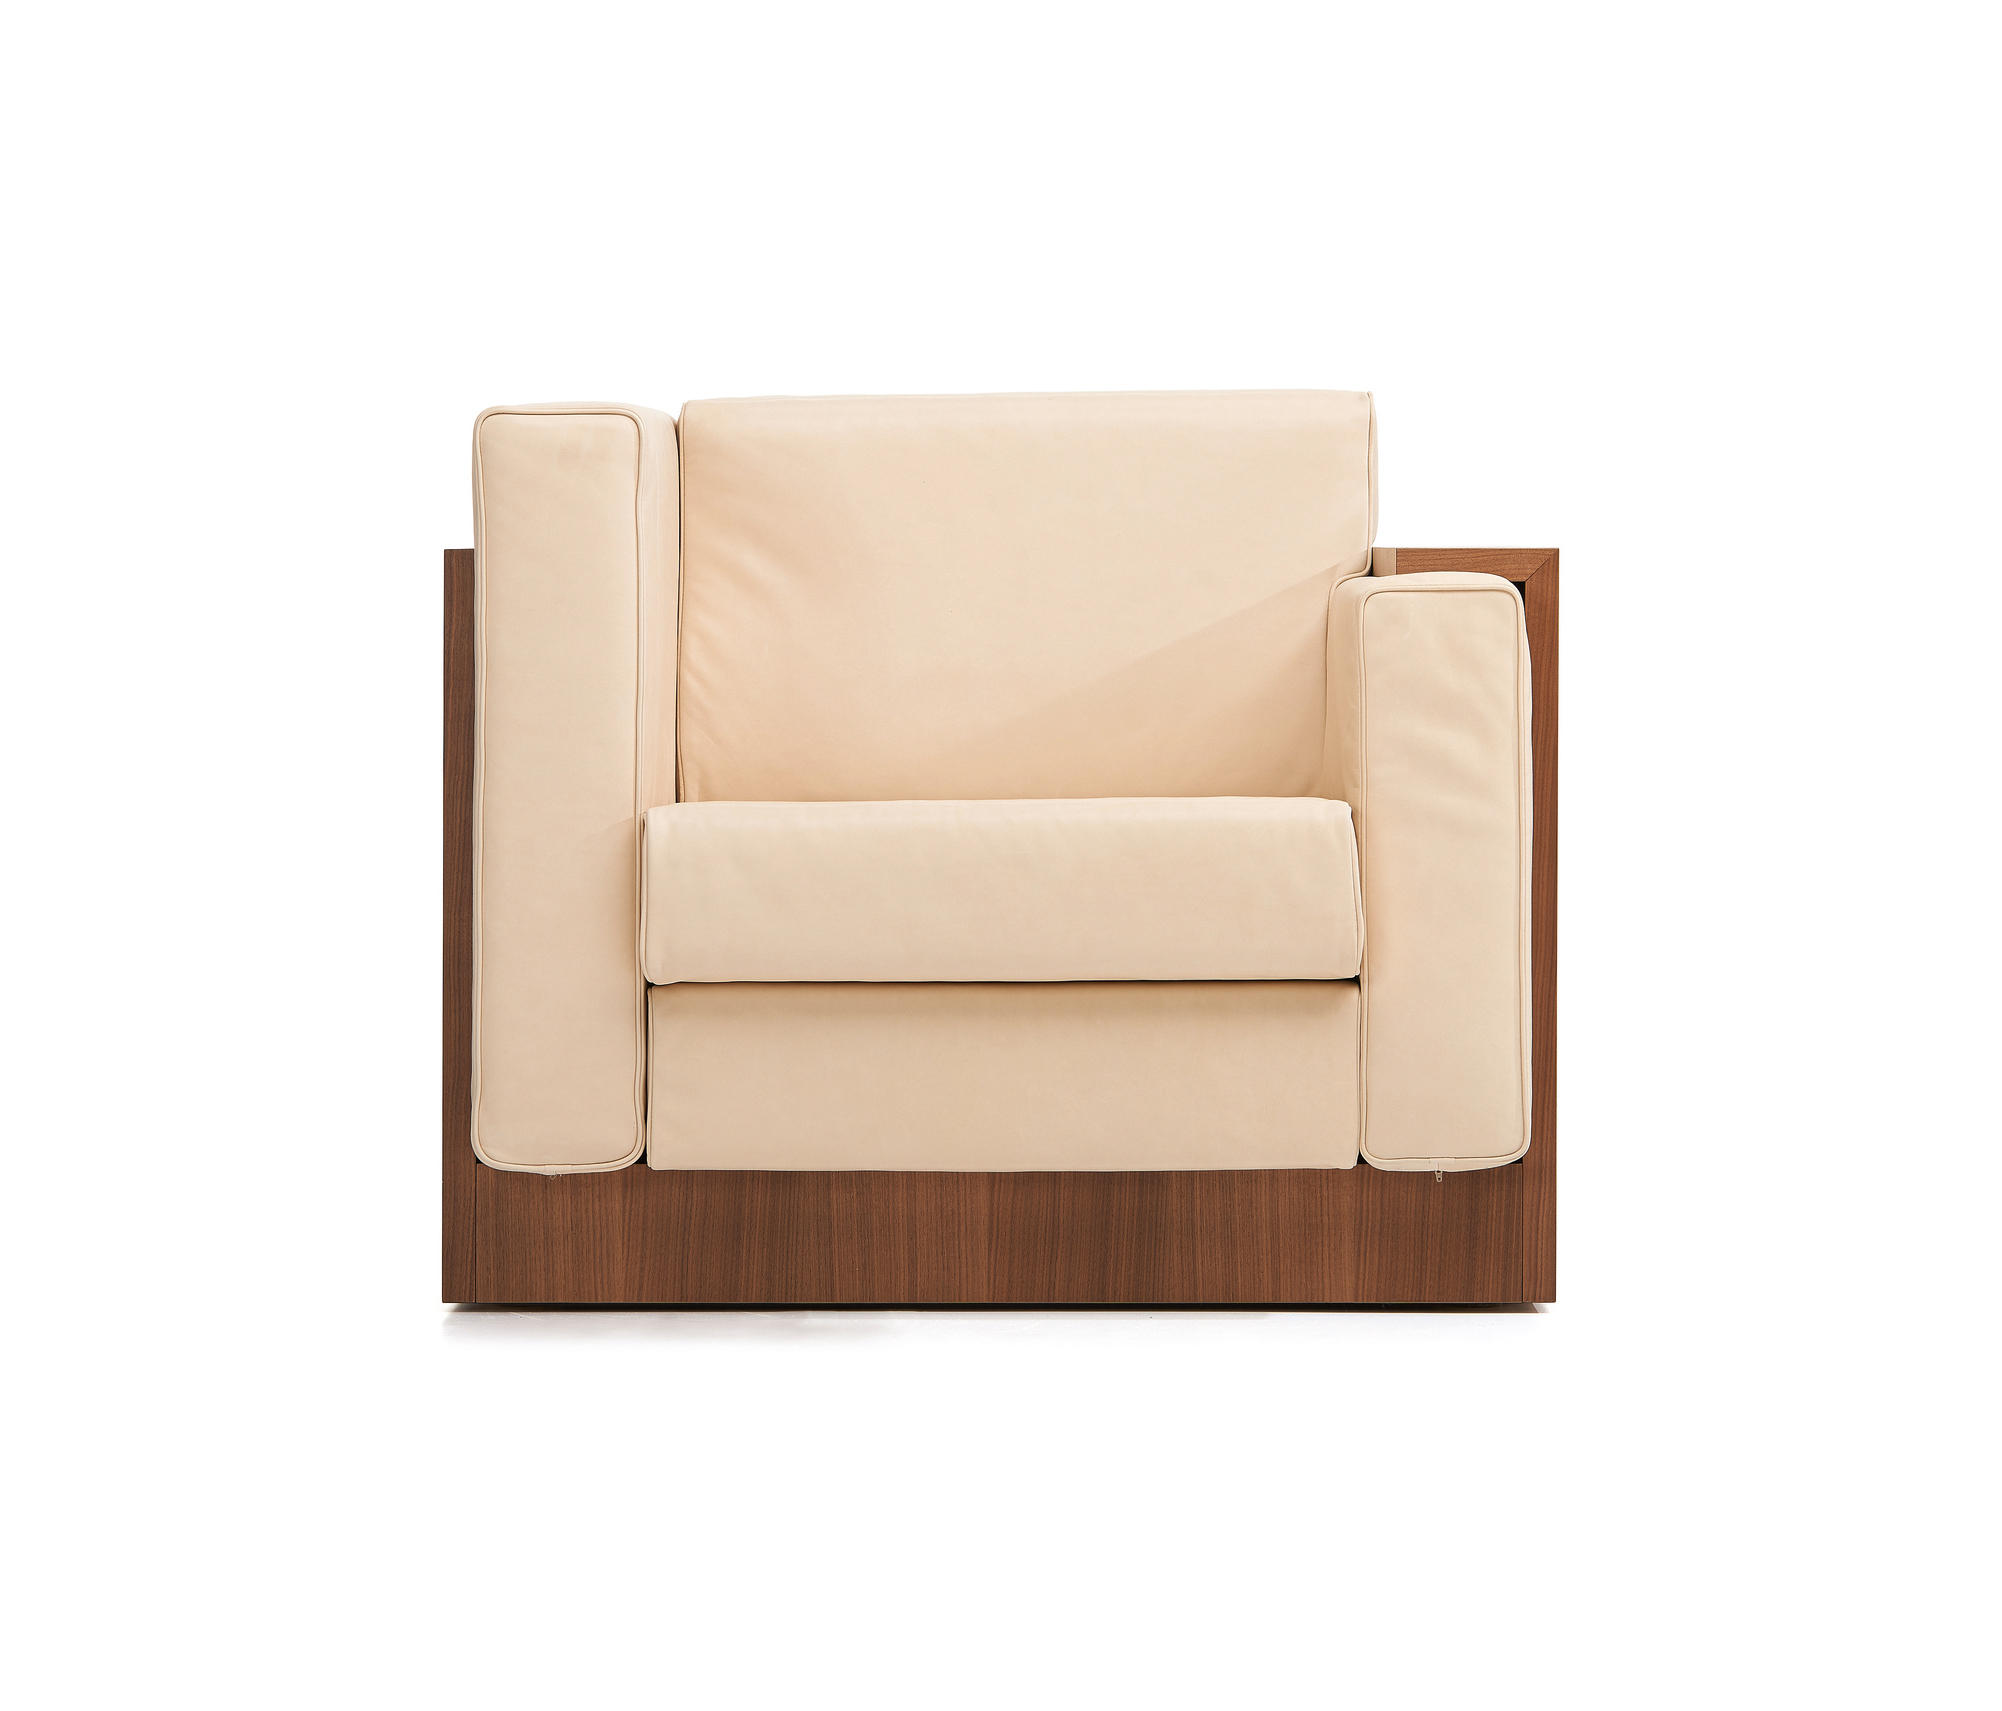 Alpha seating chair lounge chairs from vs architonic for Chair vs chairman